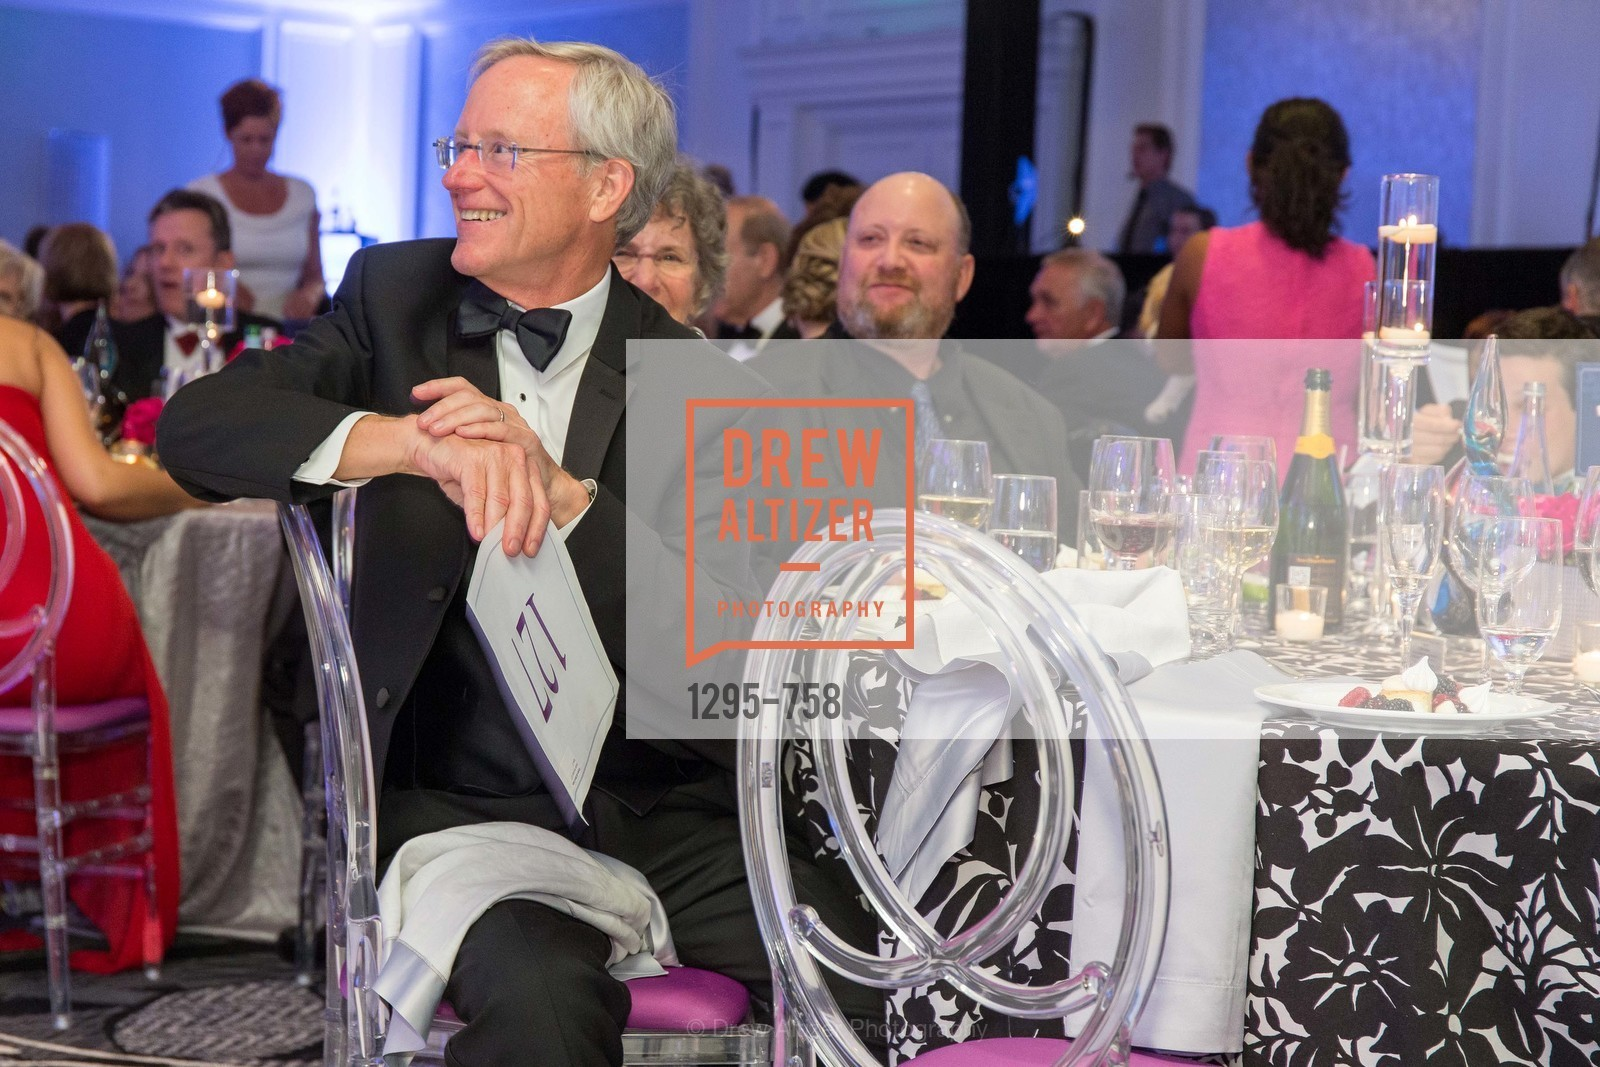 Dayton Coles, JUVENILE DIABETES RESEARCH FOUNDATION  Hope Gala, US, May 30th, 2015,Drew Altizer, Drew Altizer Photography, full-service agency, private events, San Francisco photographer, photographer california